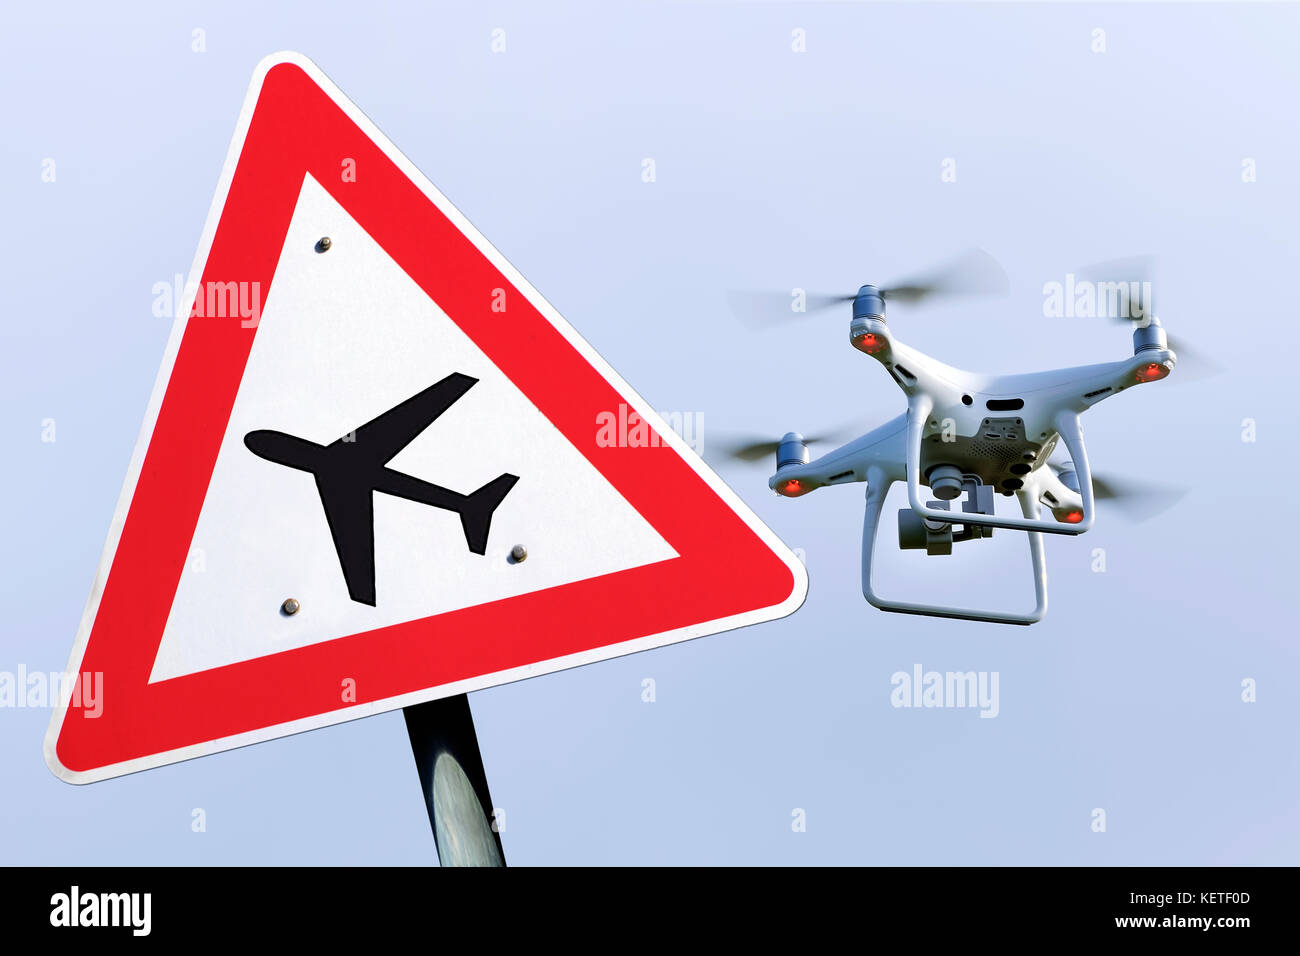 Multicopter Stock Photos Amp Multicopter Stock Images Alamy